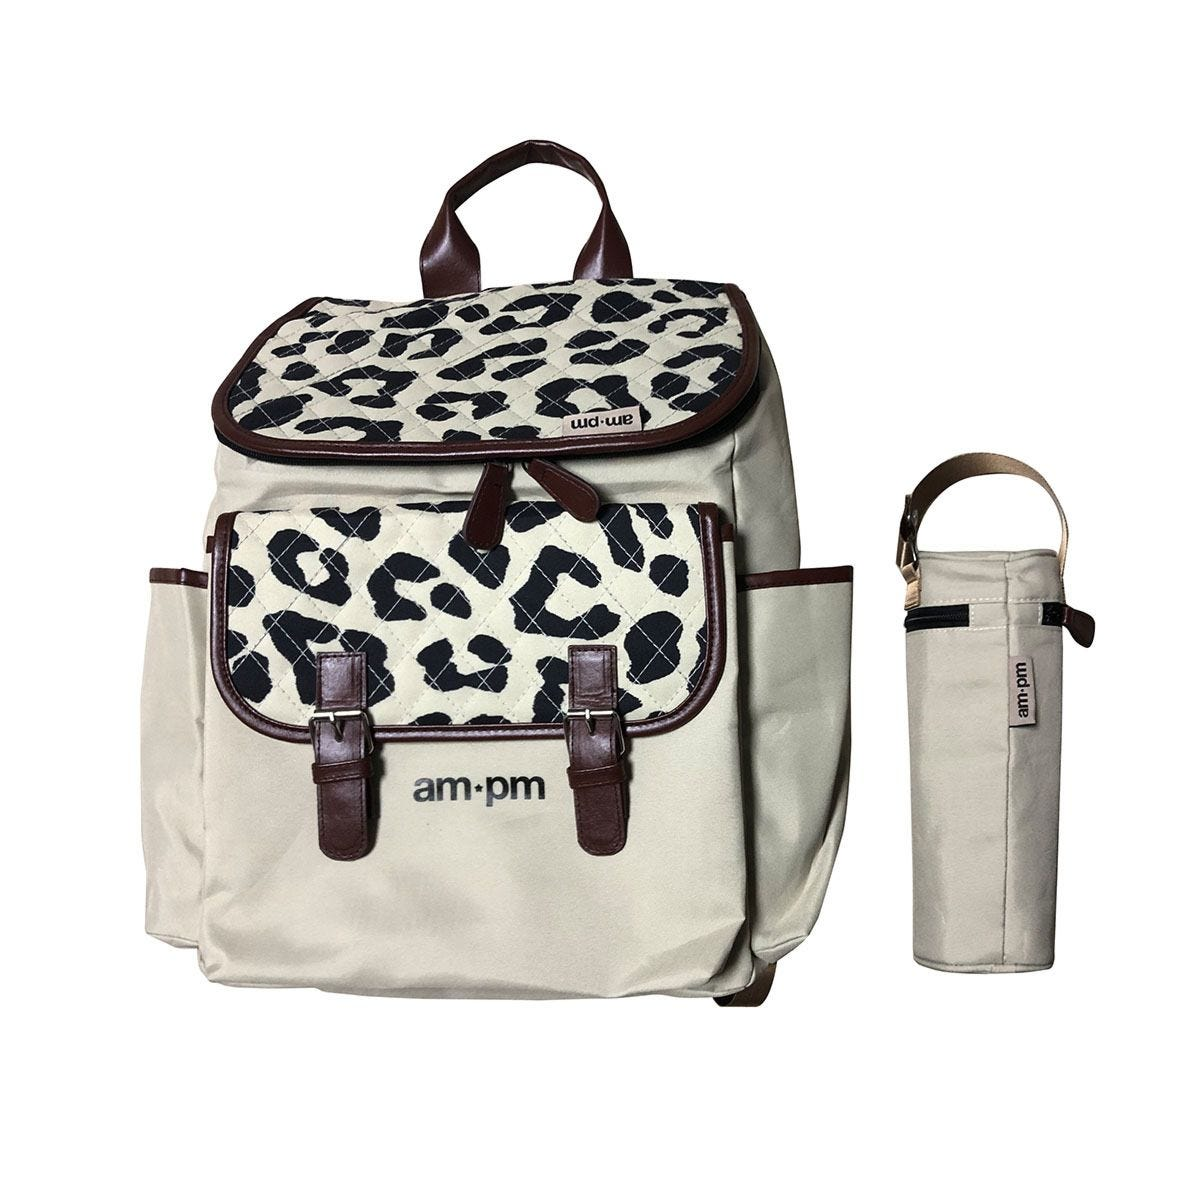 My Babiie AMPM by Christina Milian Backpack Changing Bag -  Leopard